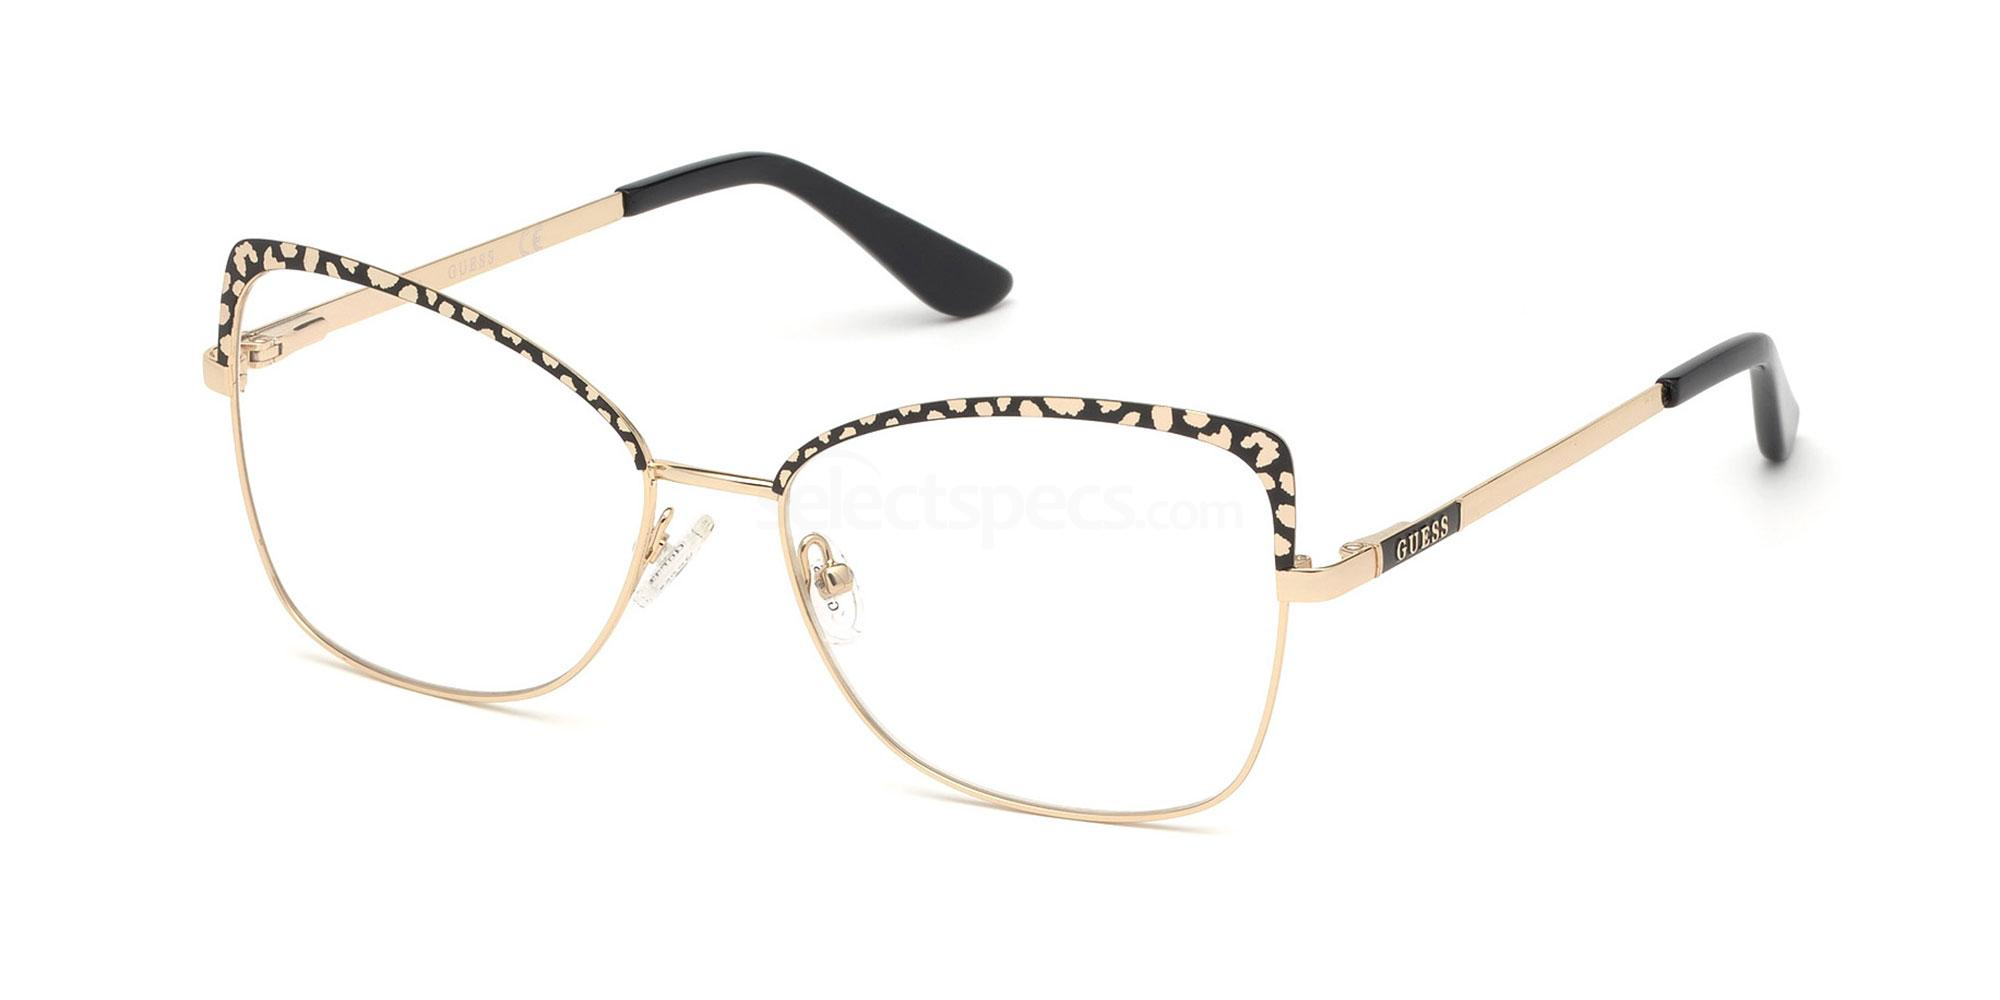 001 GU2716 Glasses, Guess